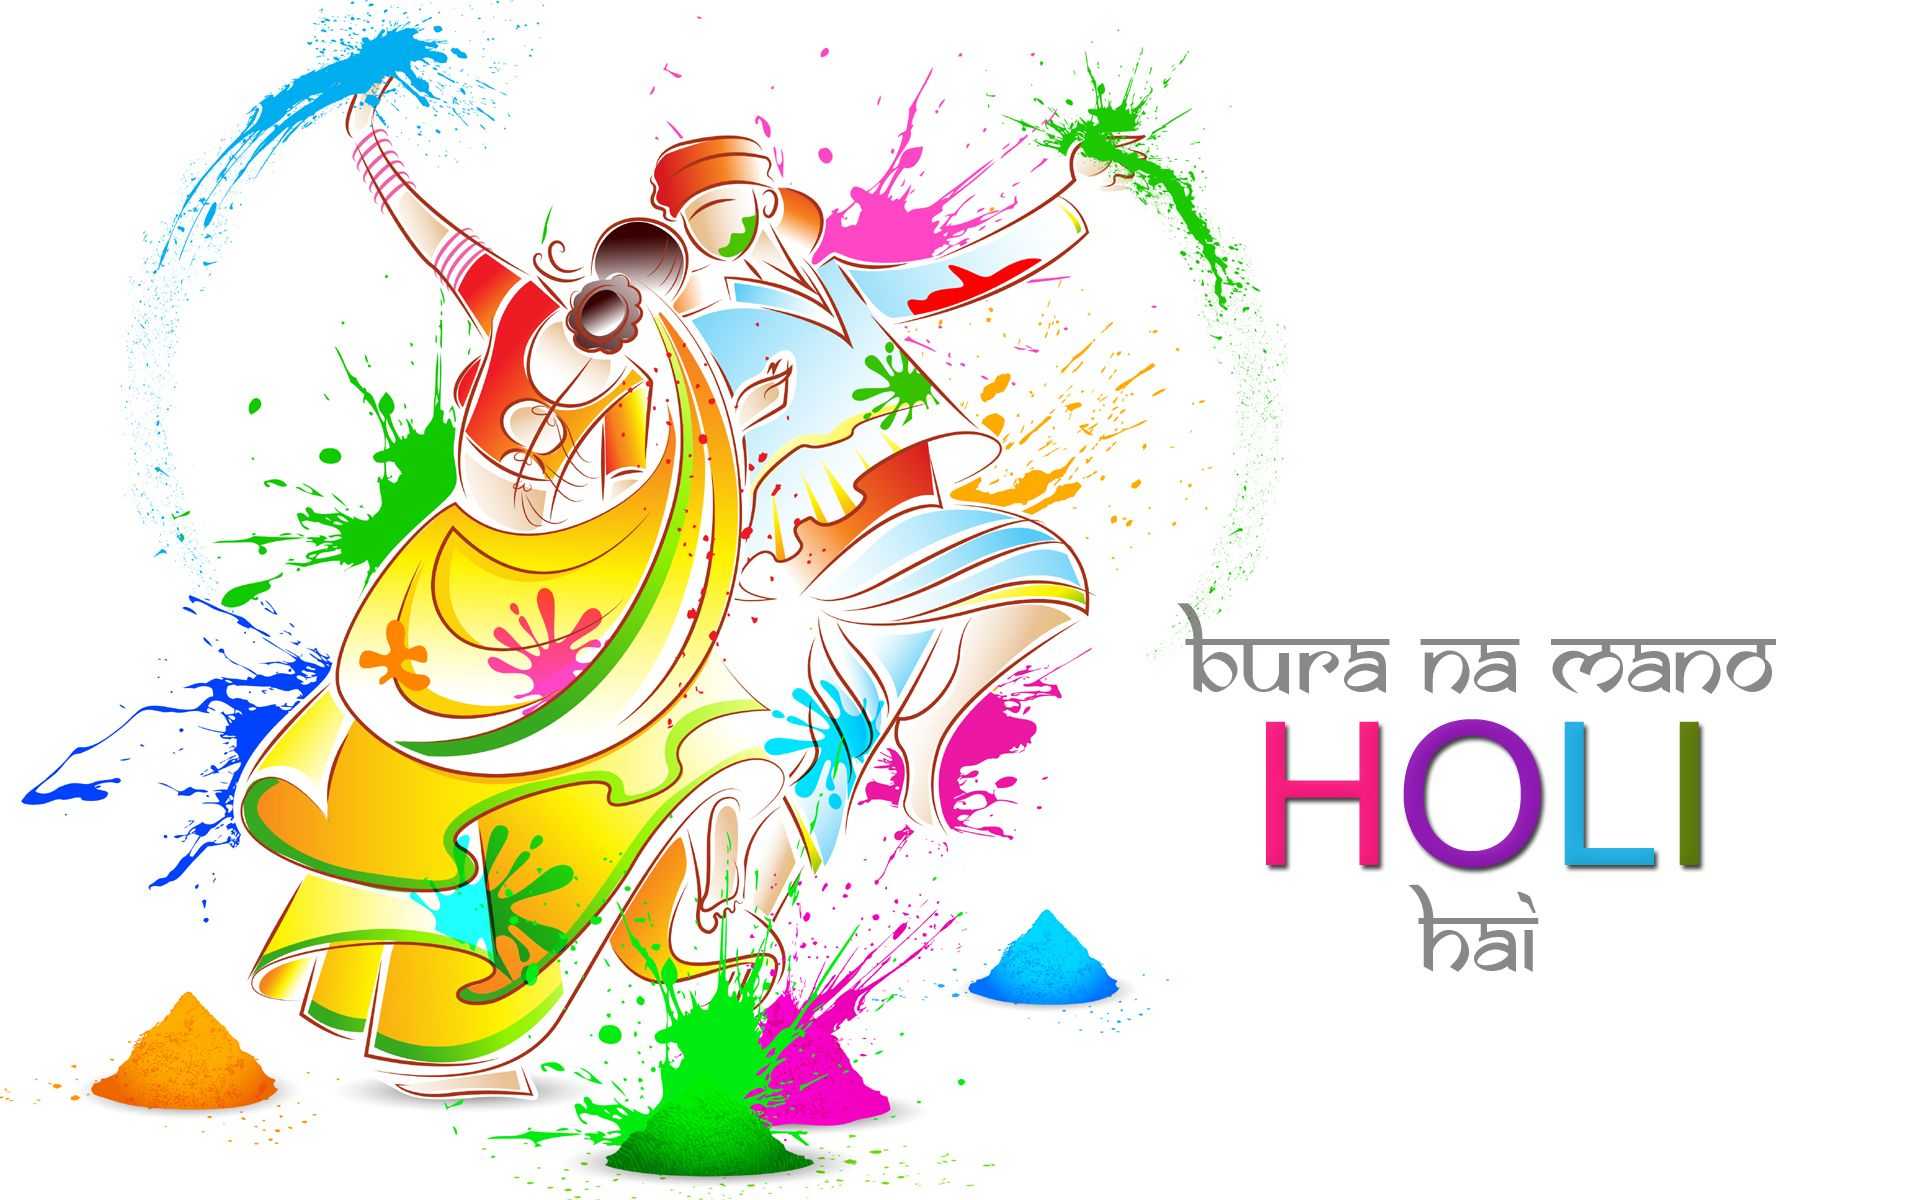 bura na mano holi hai hd wallpaper Happy Holi, Wallpapers ...